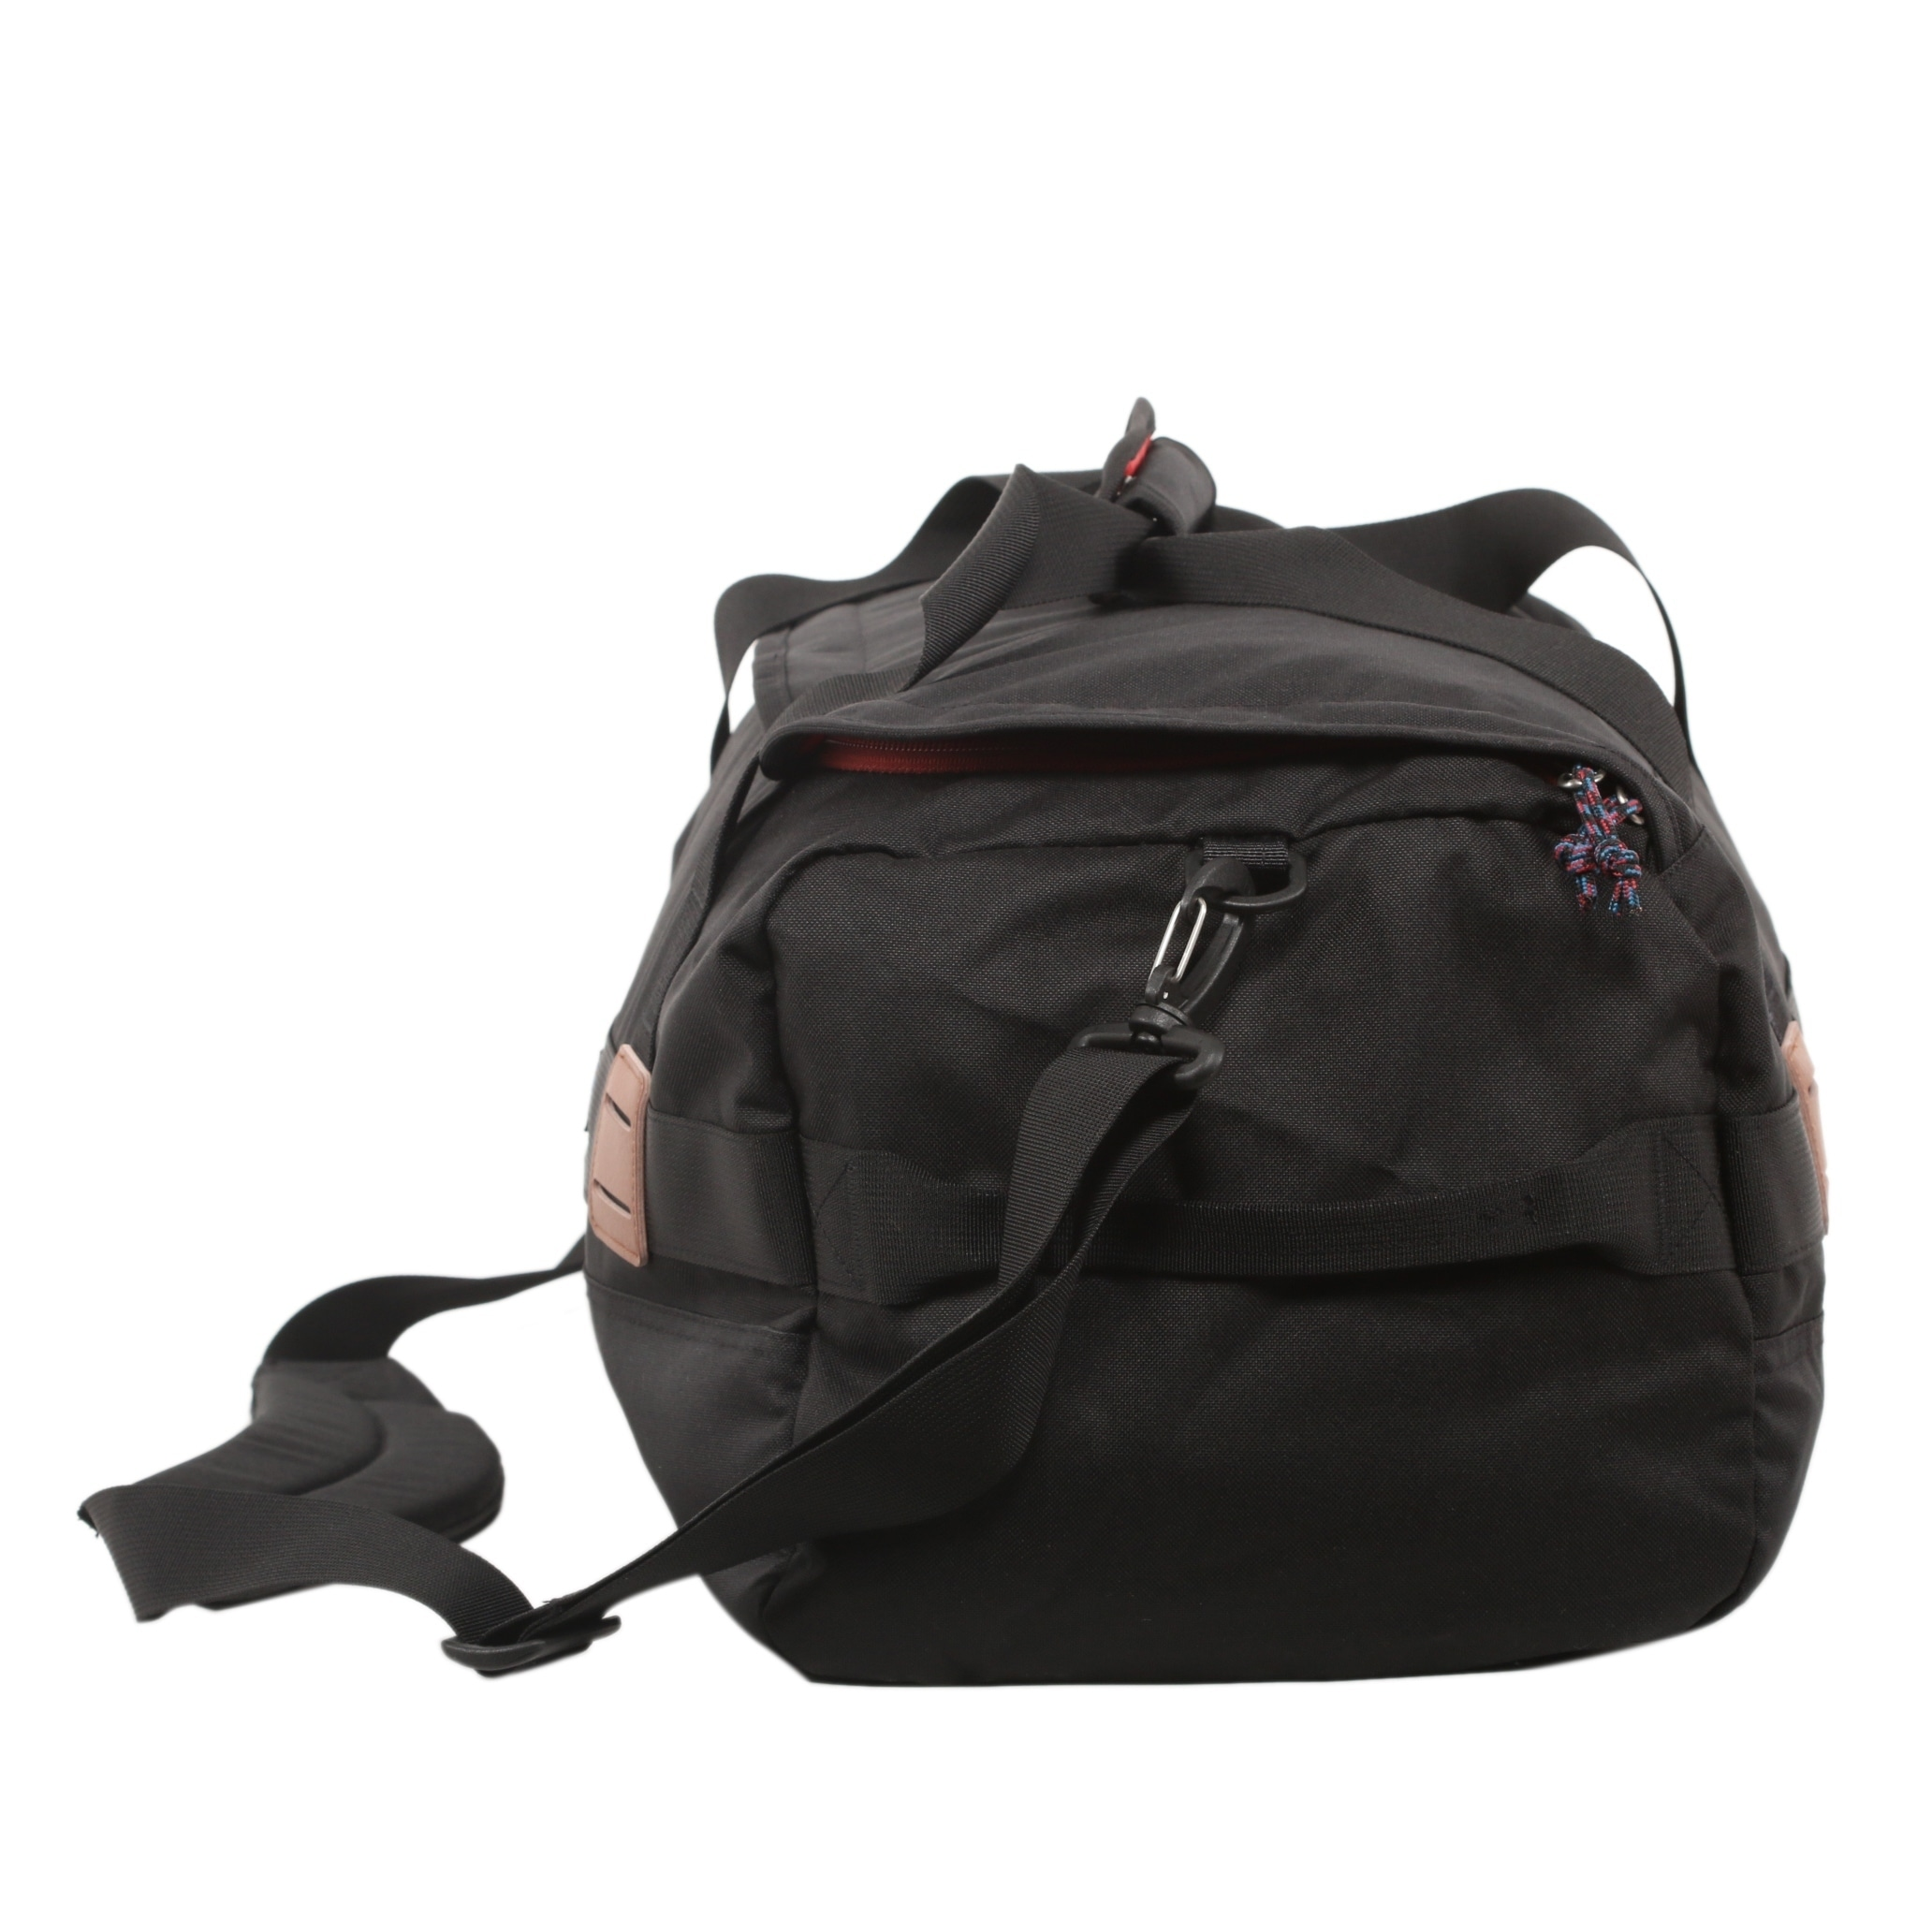 257744fcf8 Shop Patagonia Arbor Duffel 30L - Free Shipping Today - Overstock - 18903890